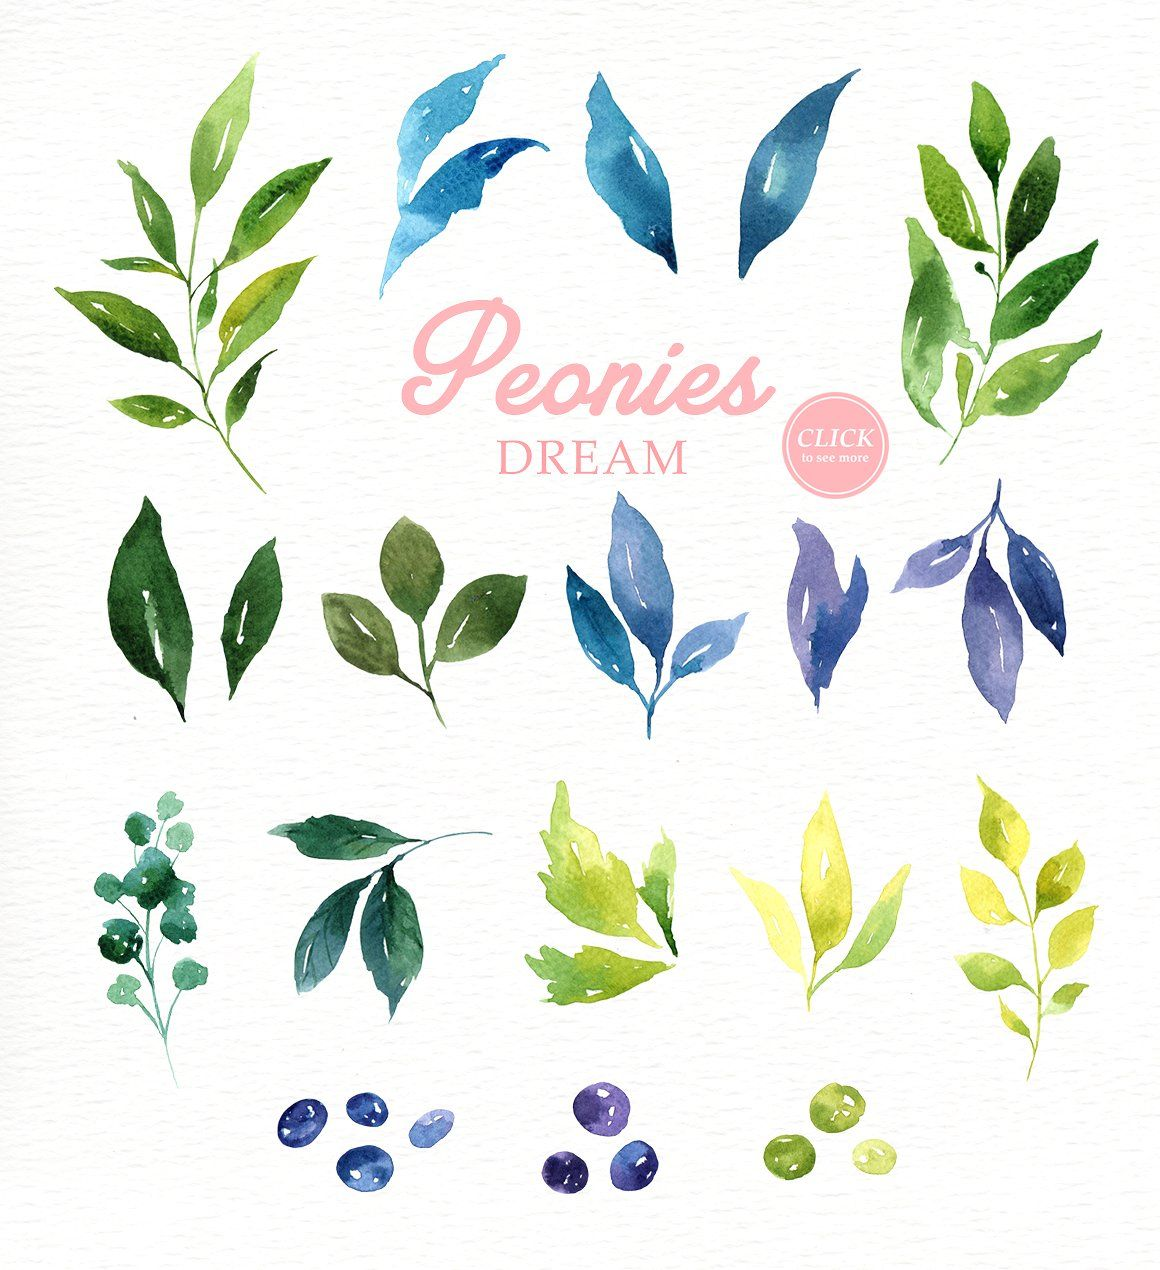 Peonies Dream Watercolor Clipart #wreath#Perfect#wedding#Included